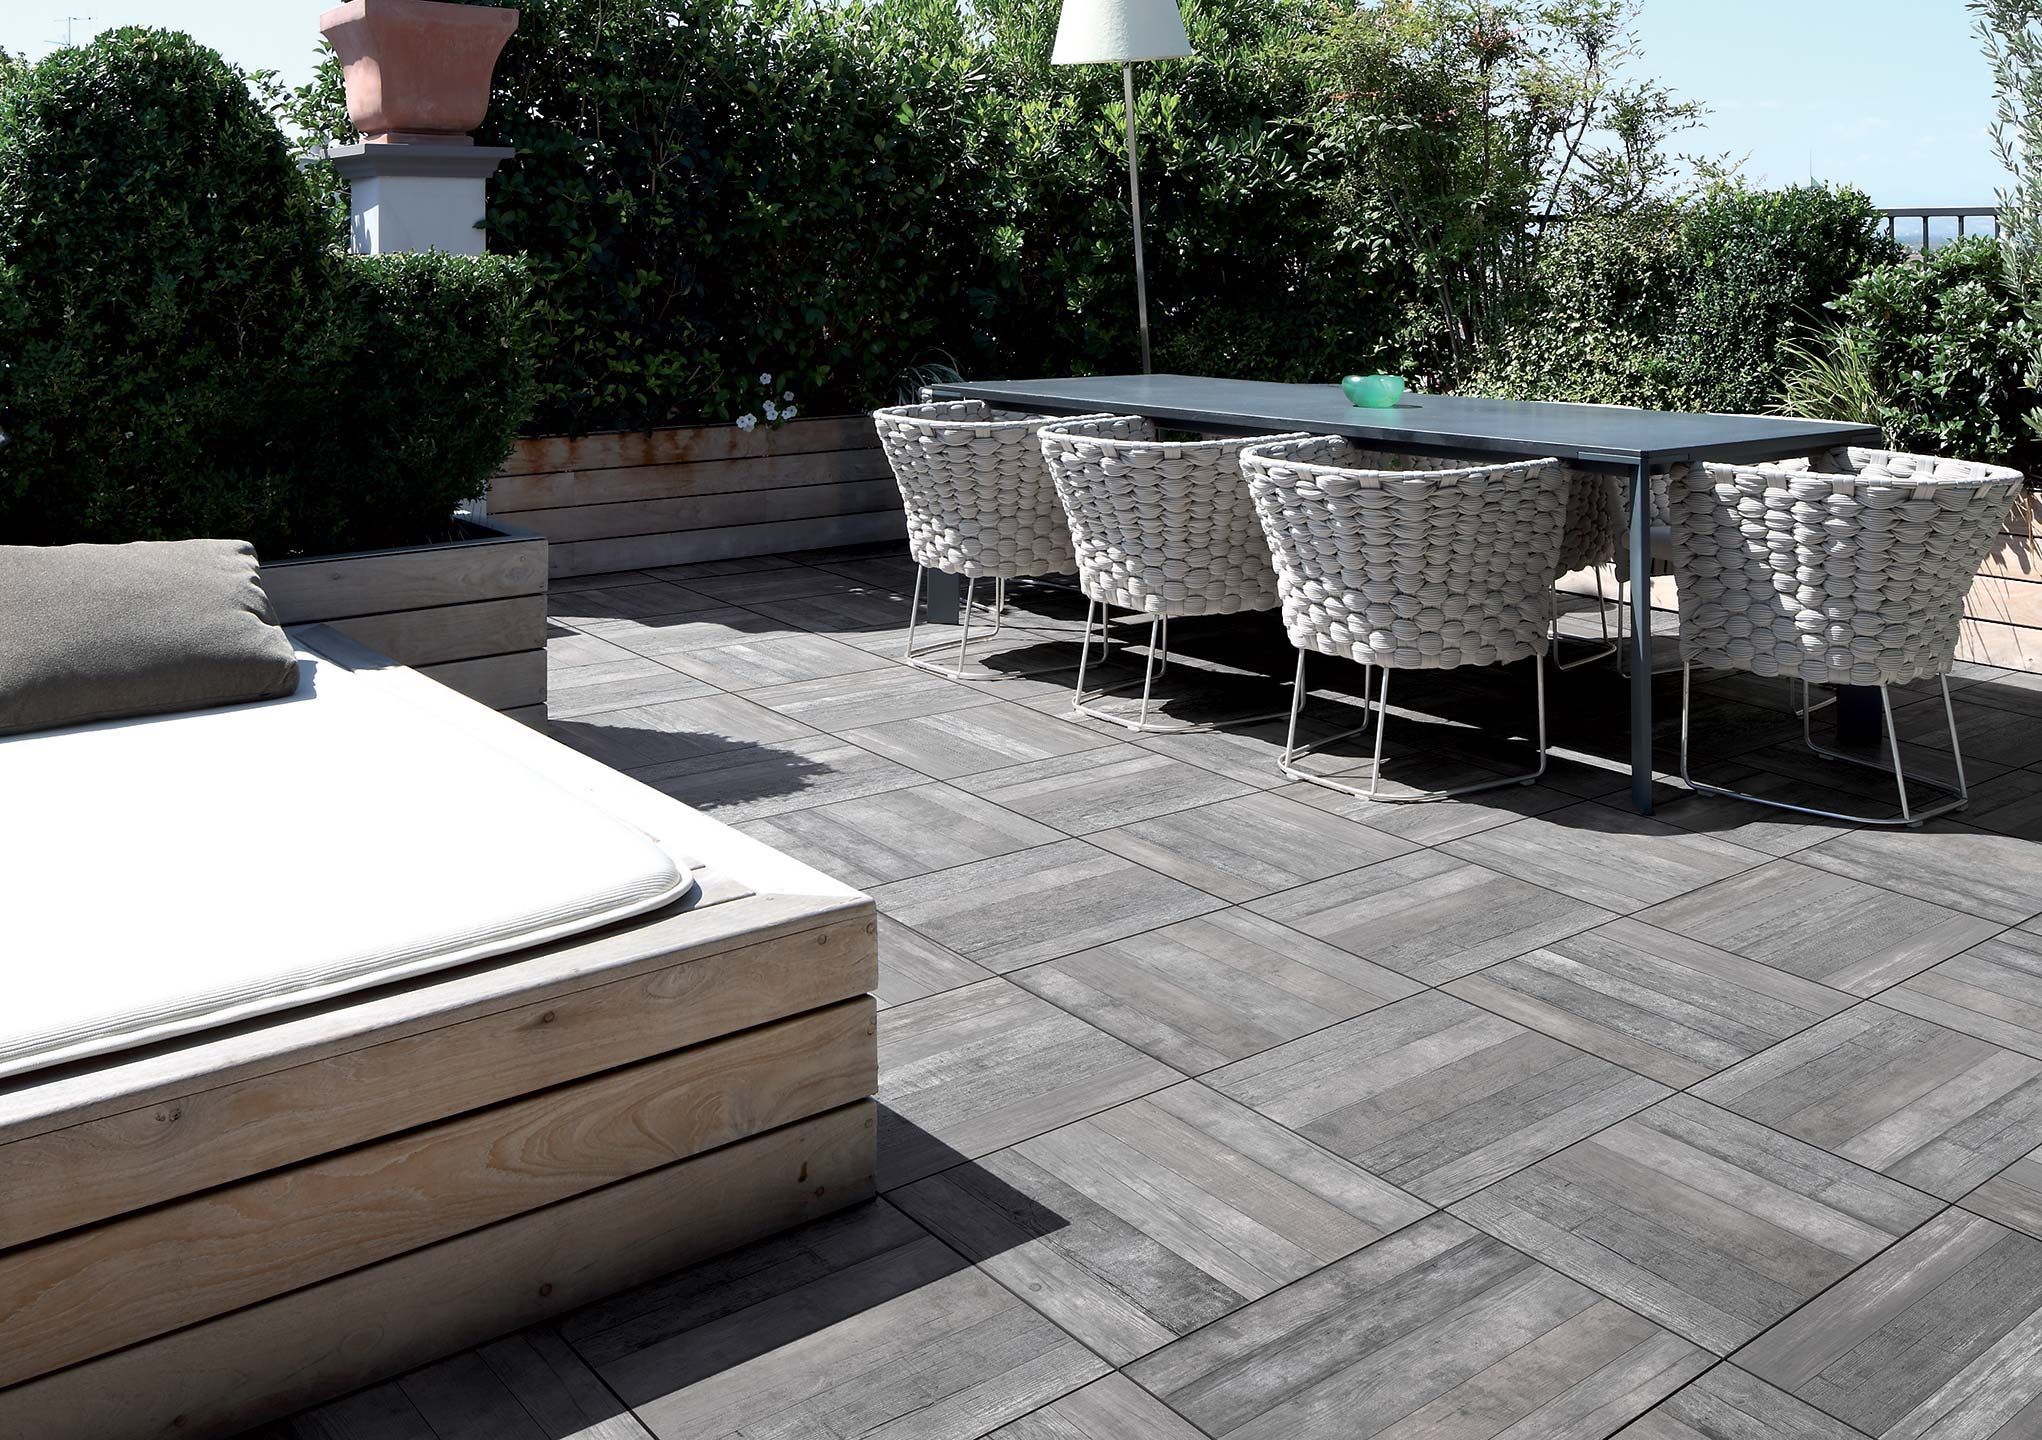 Wood Patio Pavers icon outdoor 20mm paver made from porcelain to replicate recycled & 100+ Wood Patio Pavers Best 25 Wood Deck Tiles Ideas Only On ...